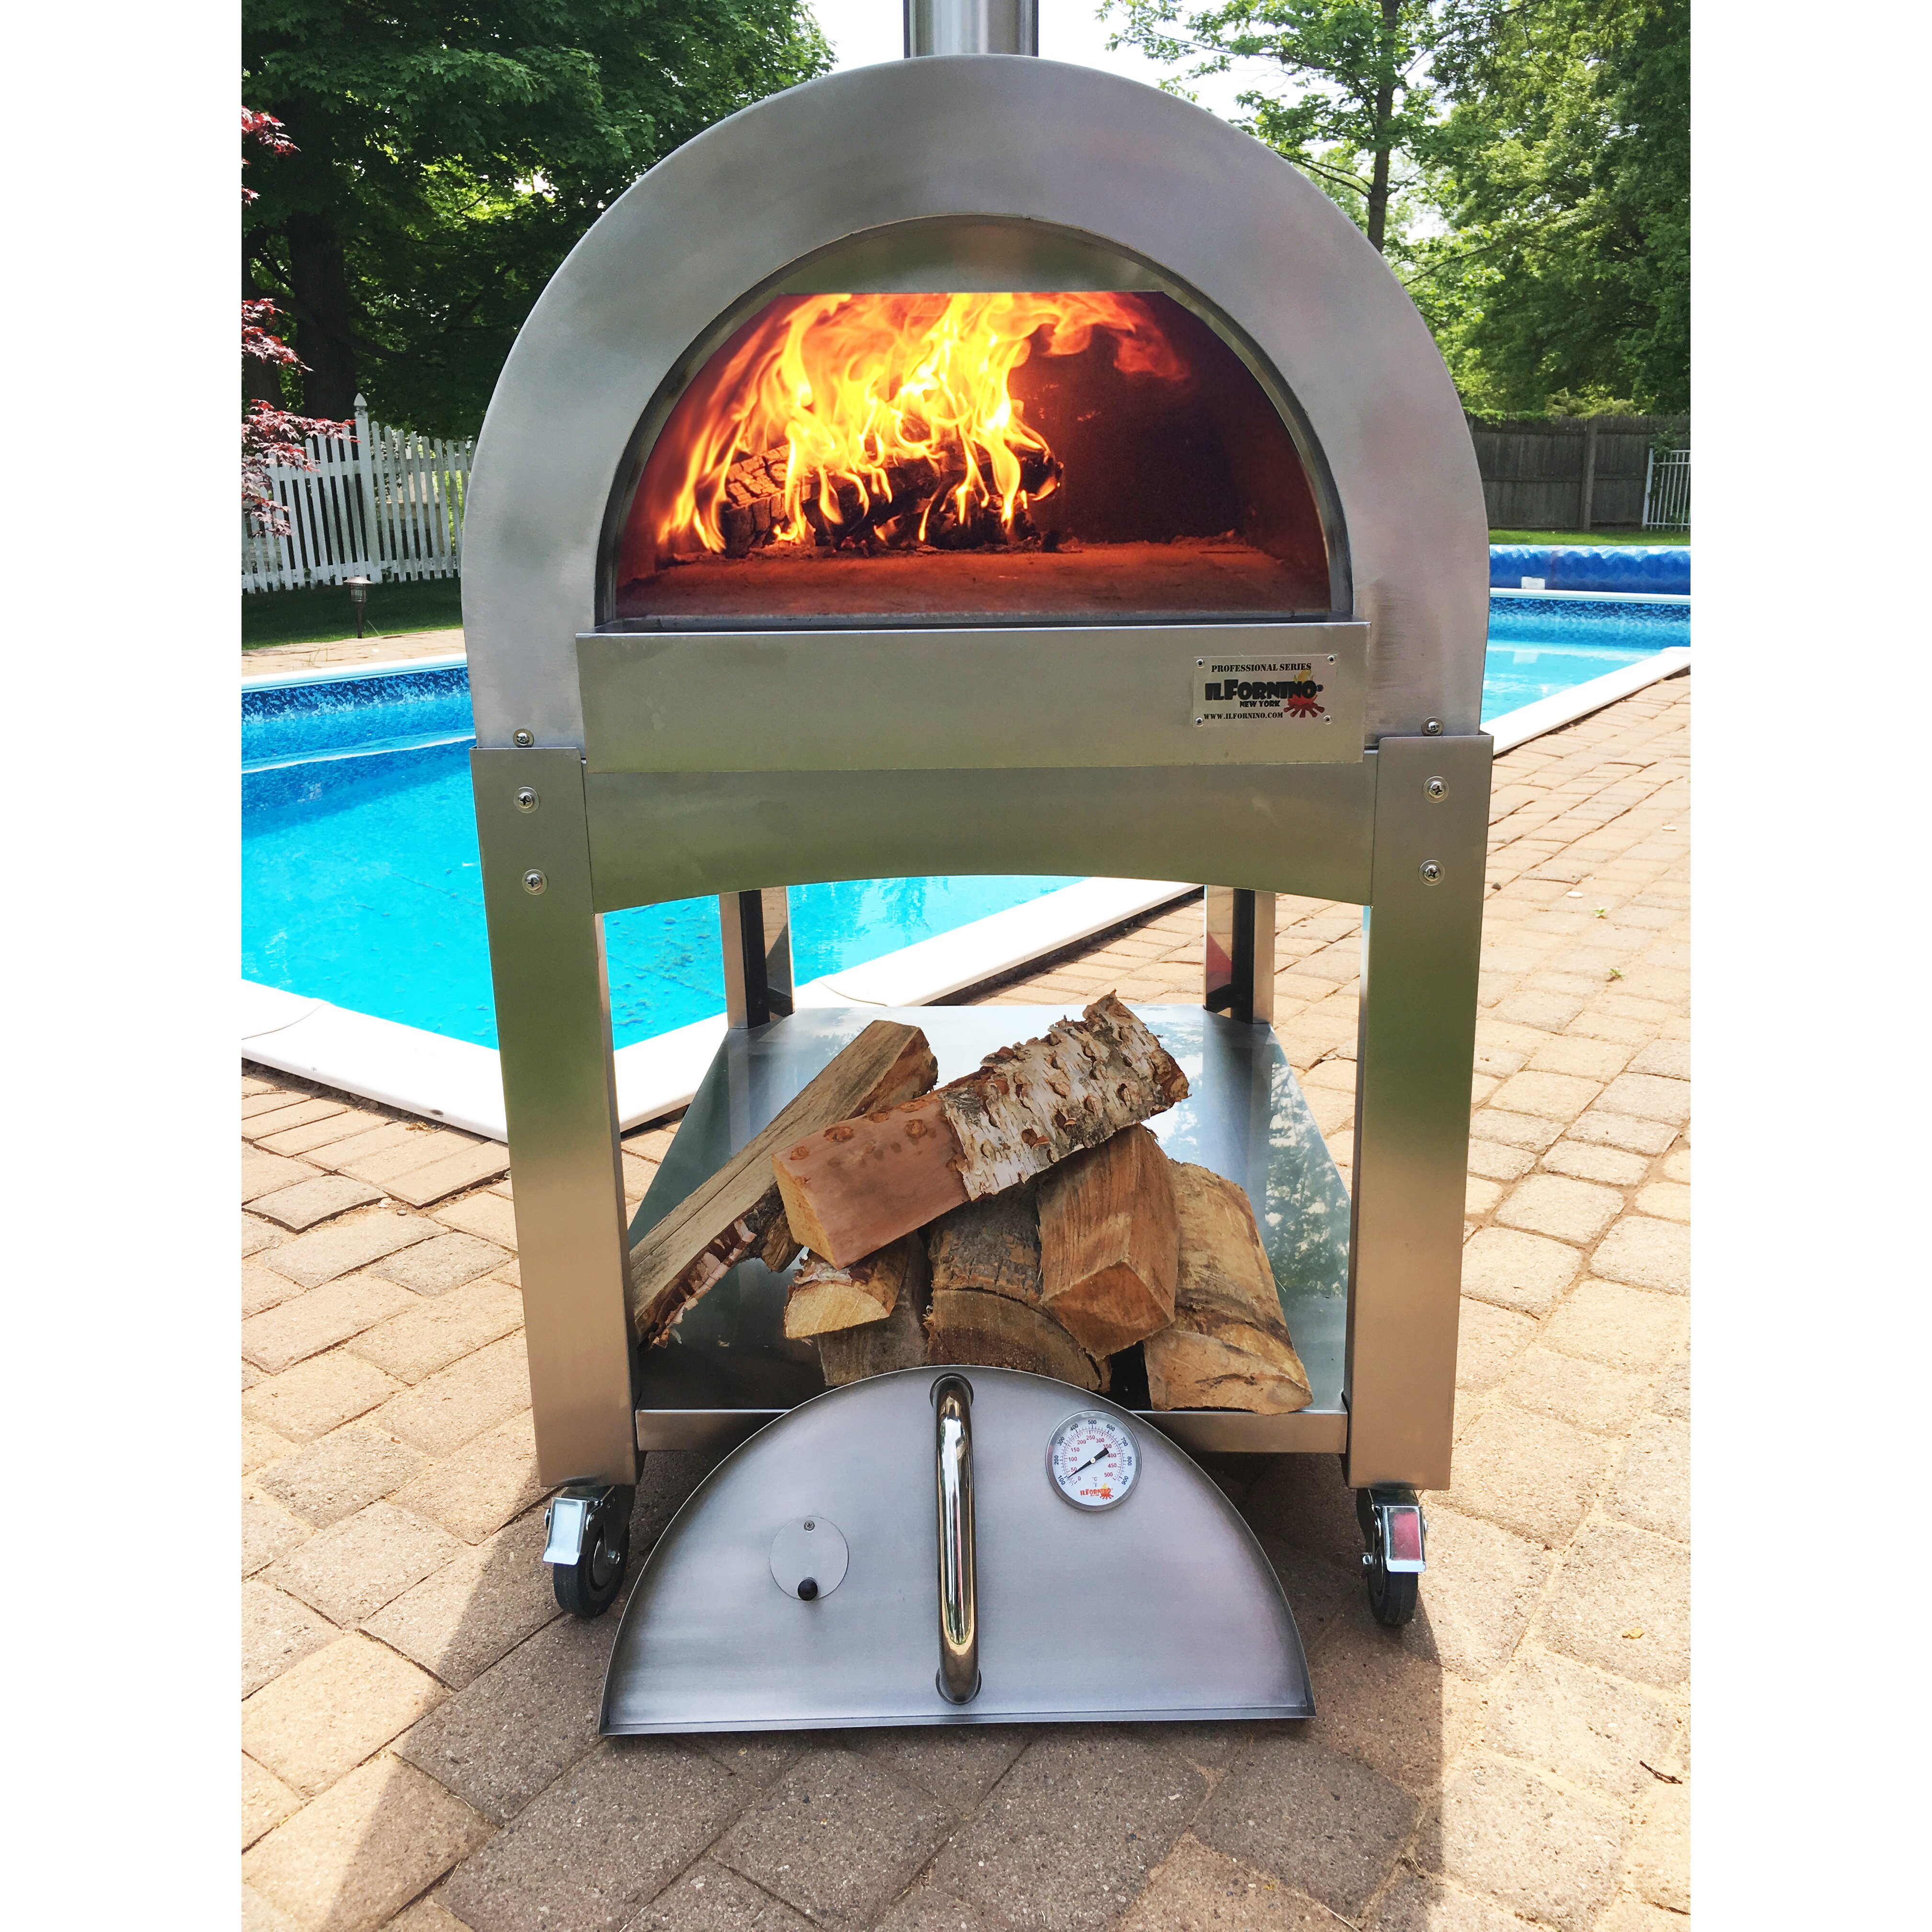 Home Wood Oven ~ Ilfornino professional series wood burning pizza oven